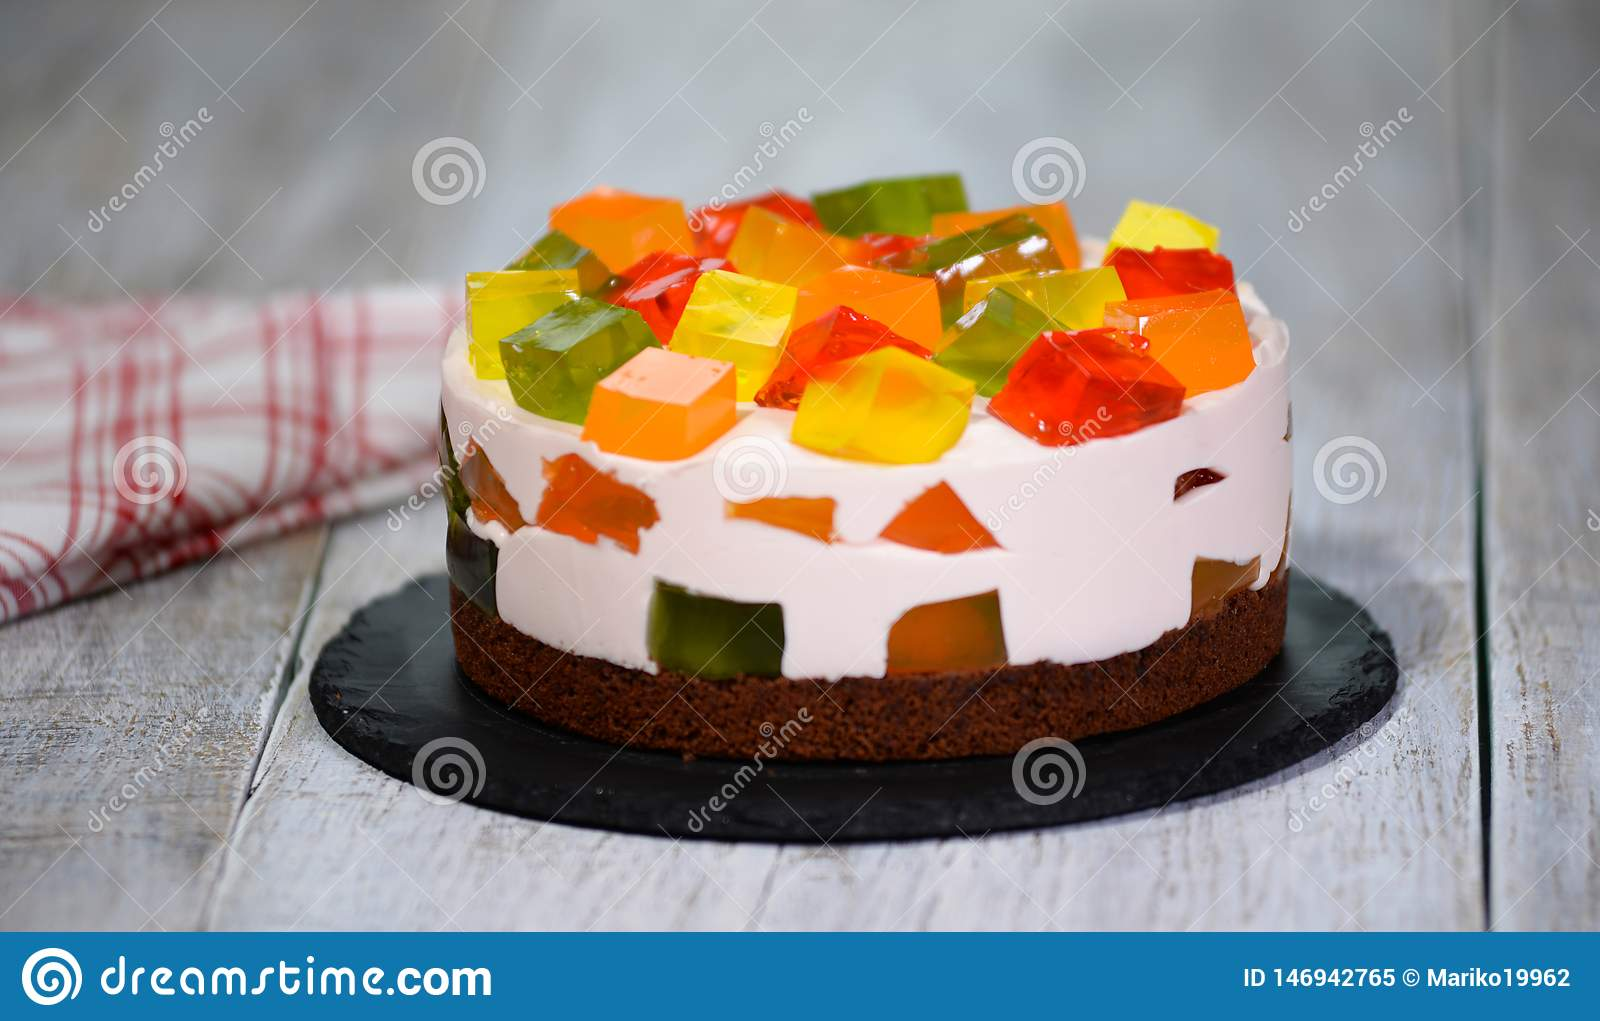 Homemade fruit dairy multi-colored jelly cake on a plate